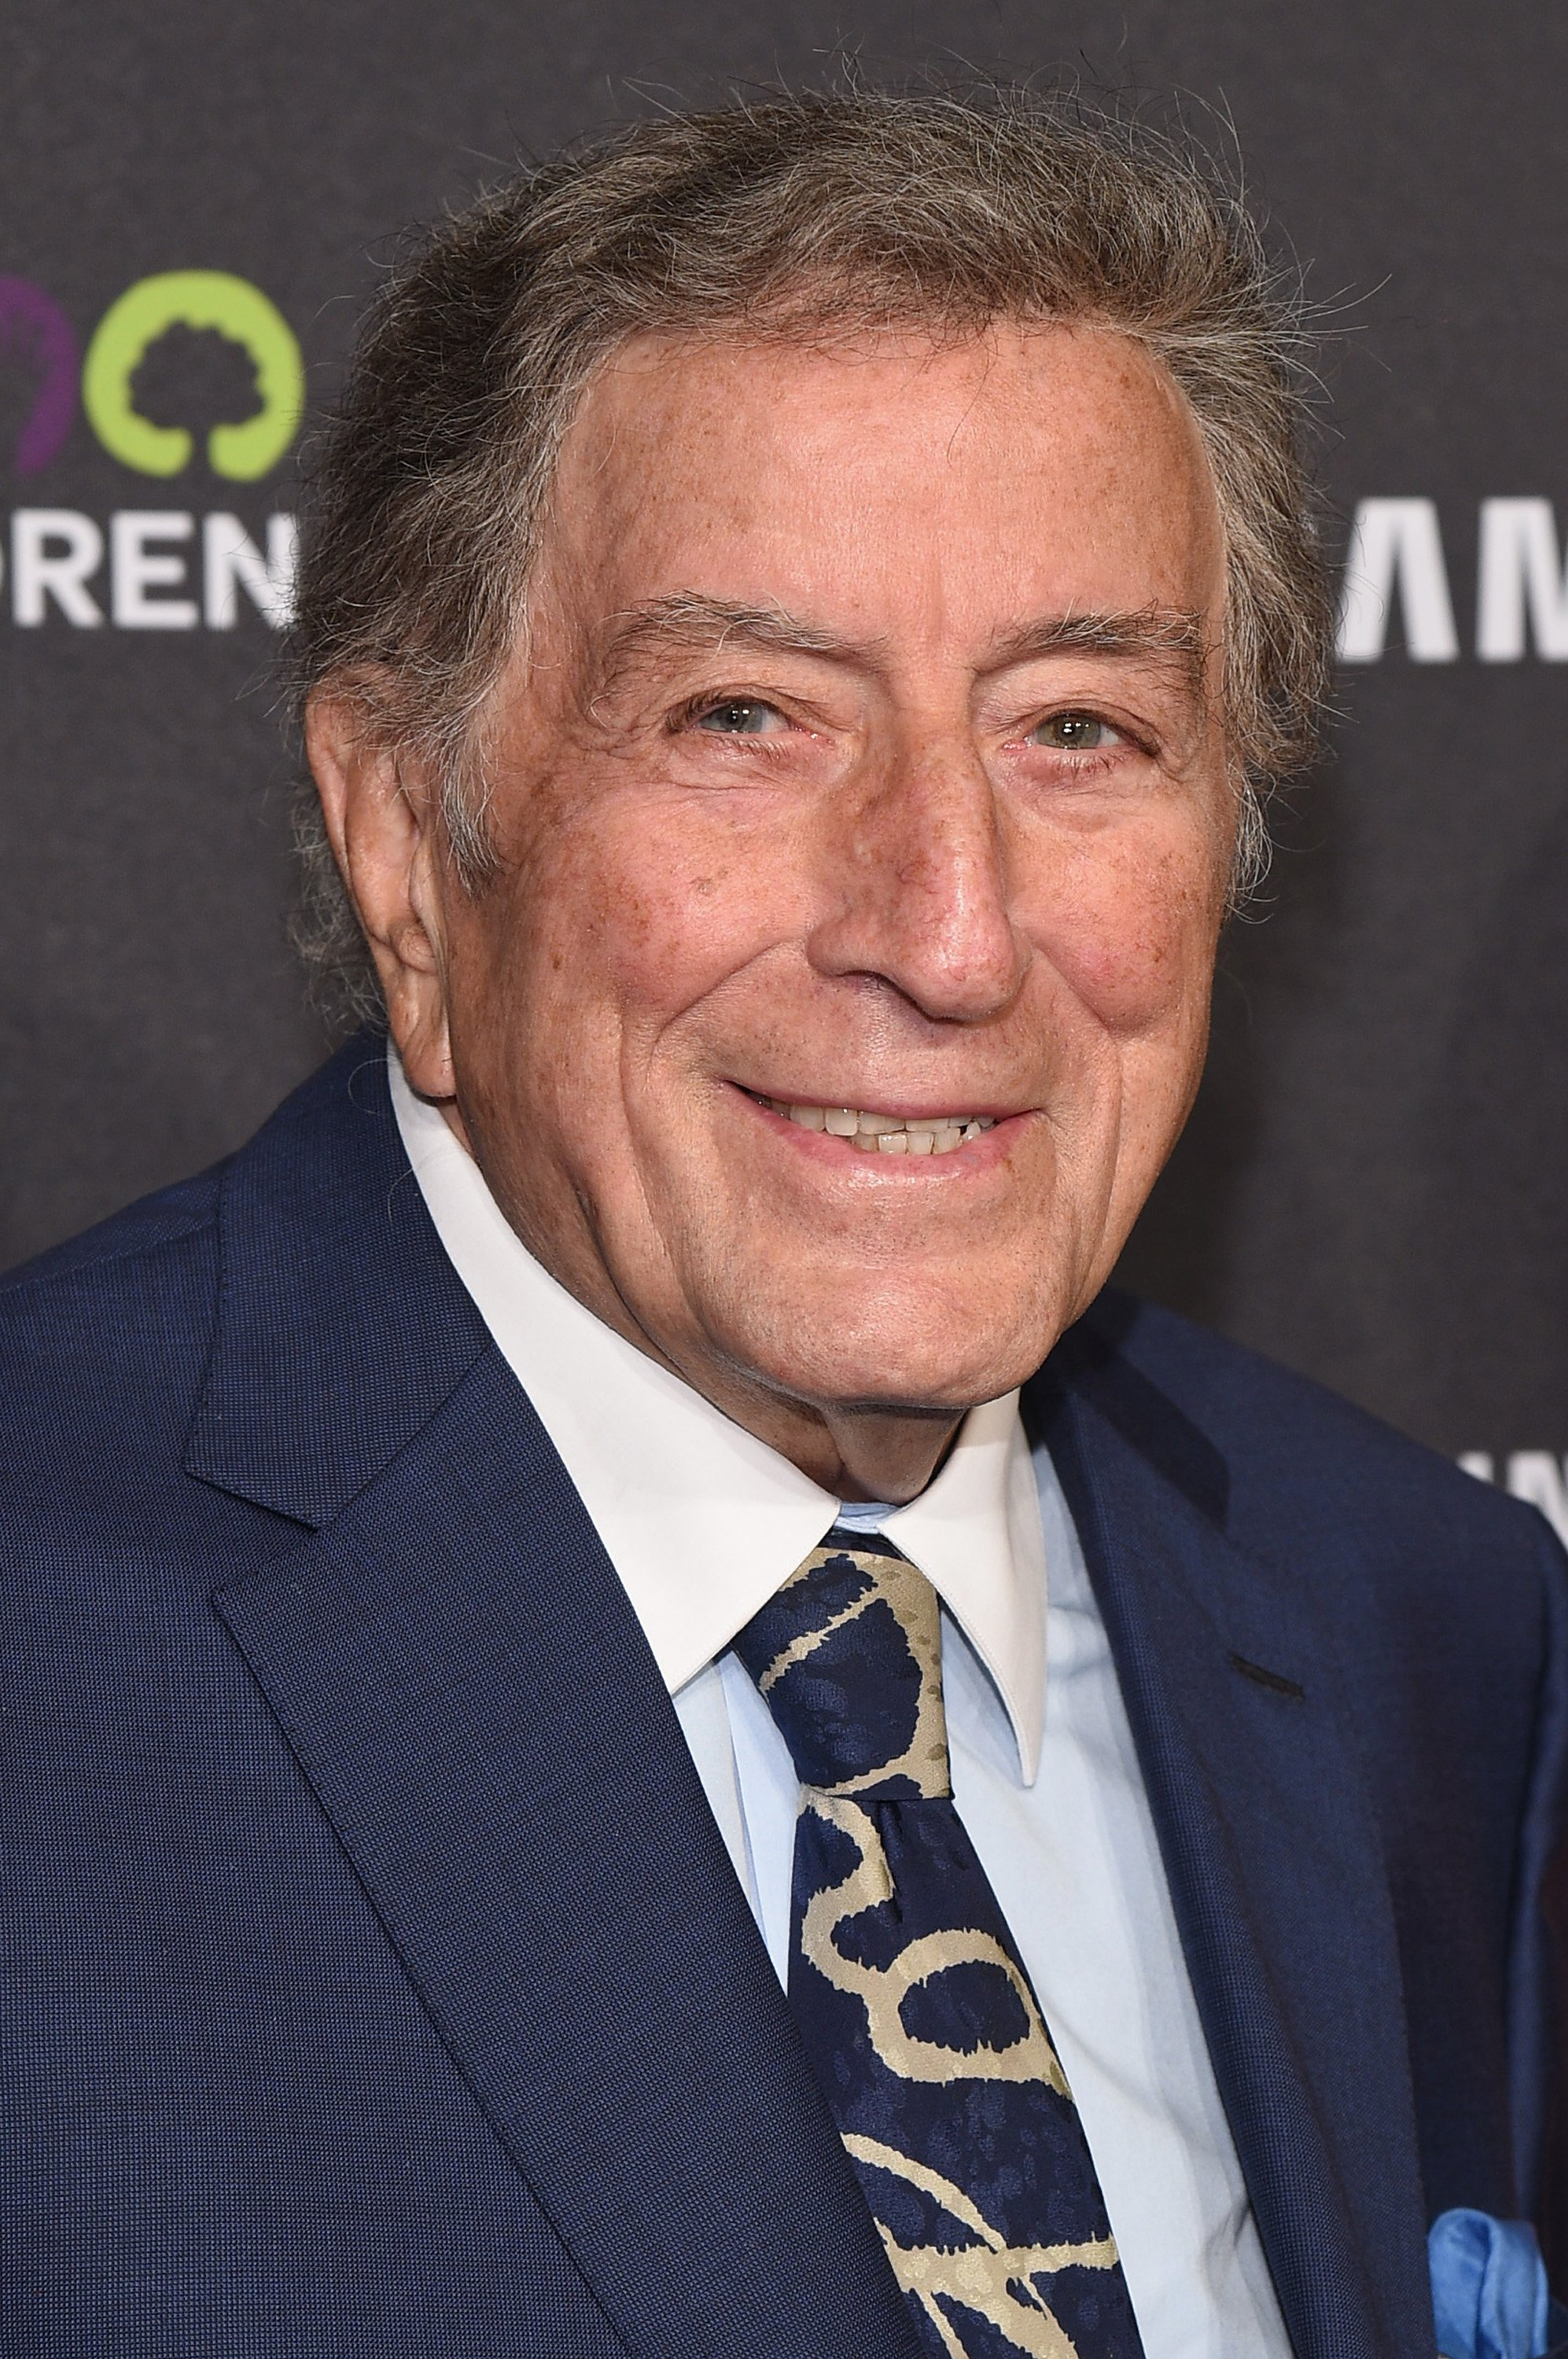 Tony Bennett attending the Hope for Children Gala at the Hammerstein Ballroom.  Source | Photo: Getty Images